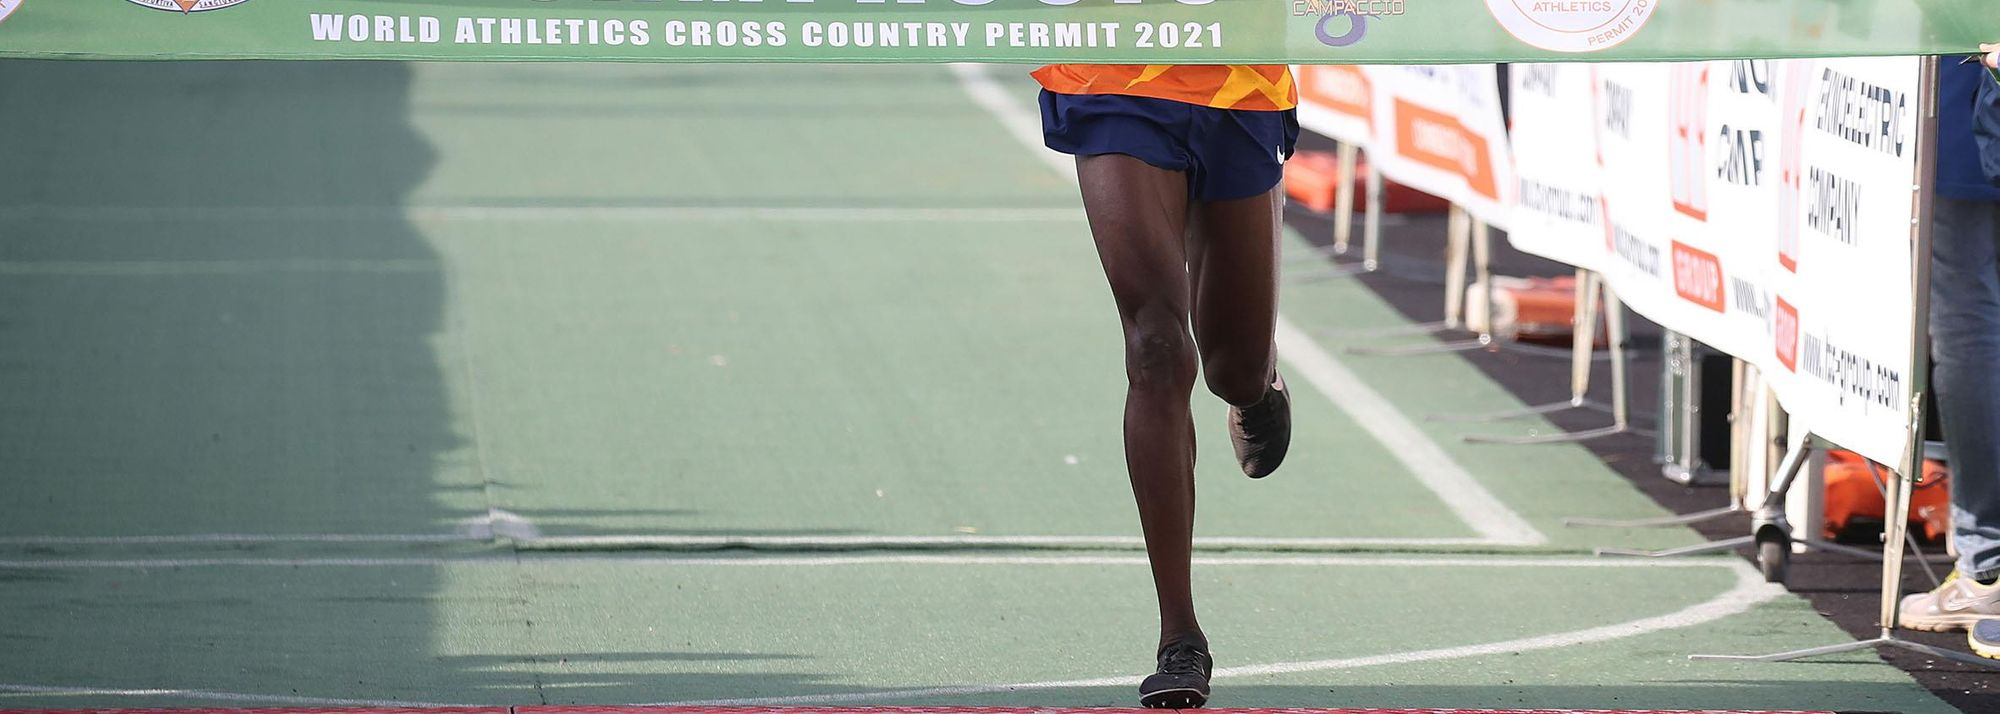 Reigning world half marathon champion Jacob Kiplimo from Uganda and Tsehay Gemechu from Ethiopia claimed the victories at the 64th edition of the Campaccio in San Giorgio su Legnano, Italy, the first leg of the pandemic-shortened World Athletics Cross Country Permit series, on Sunday (21).